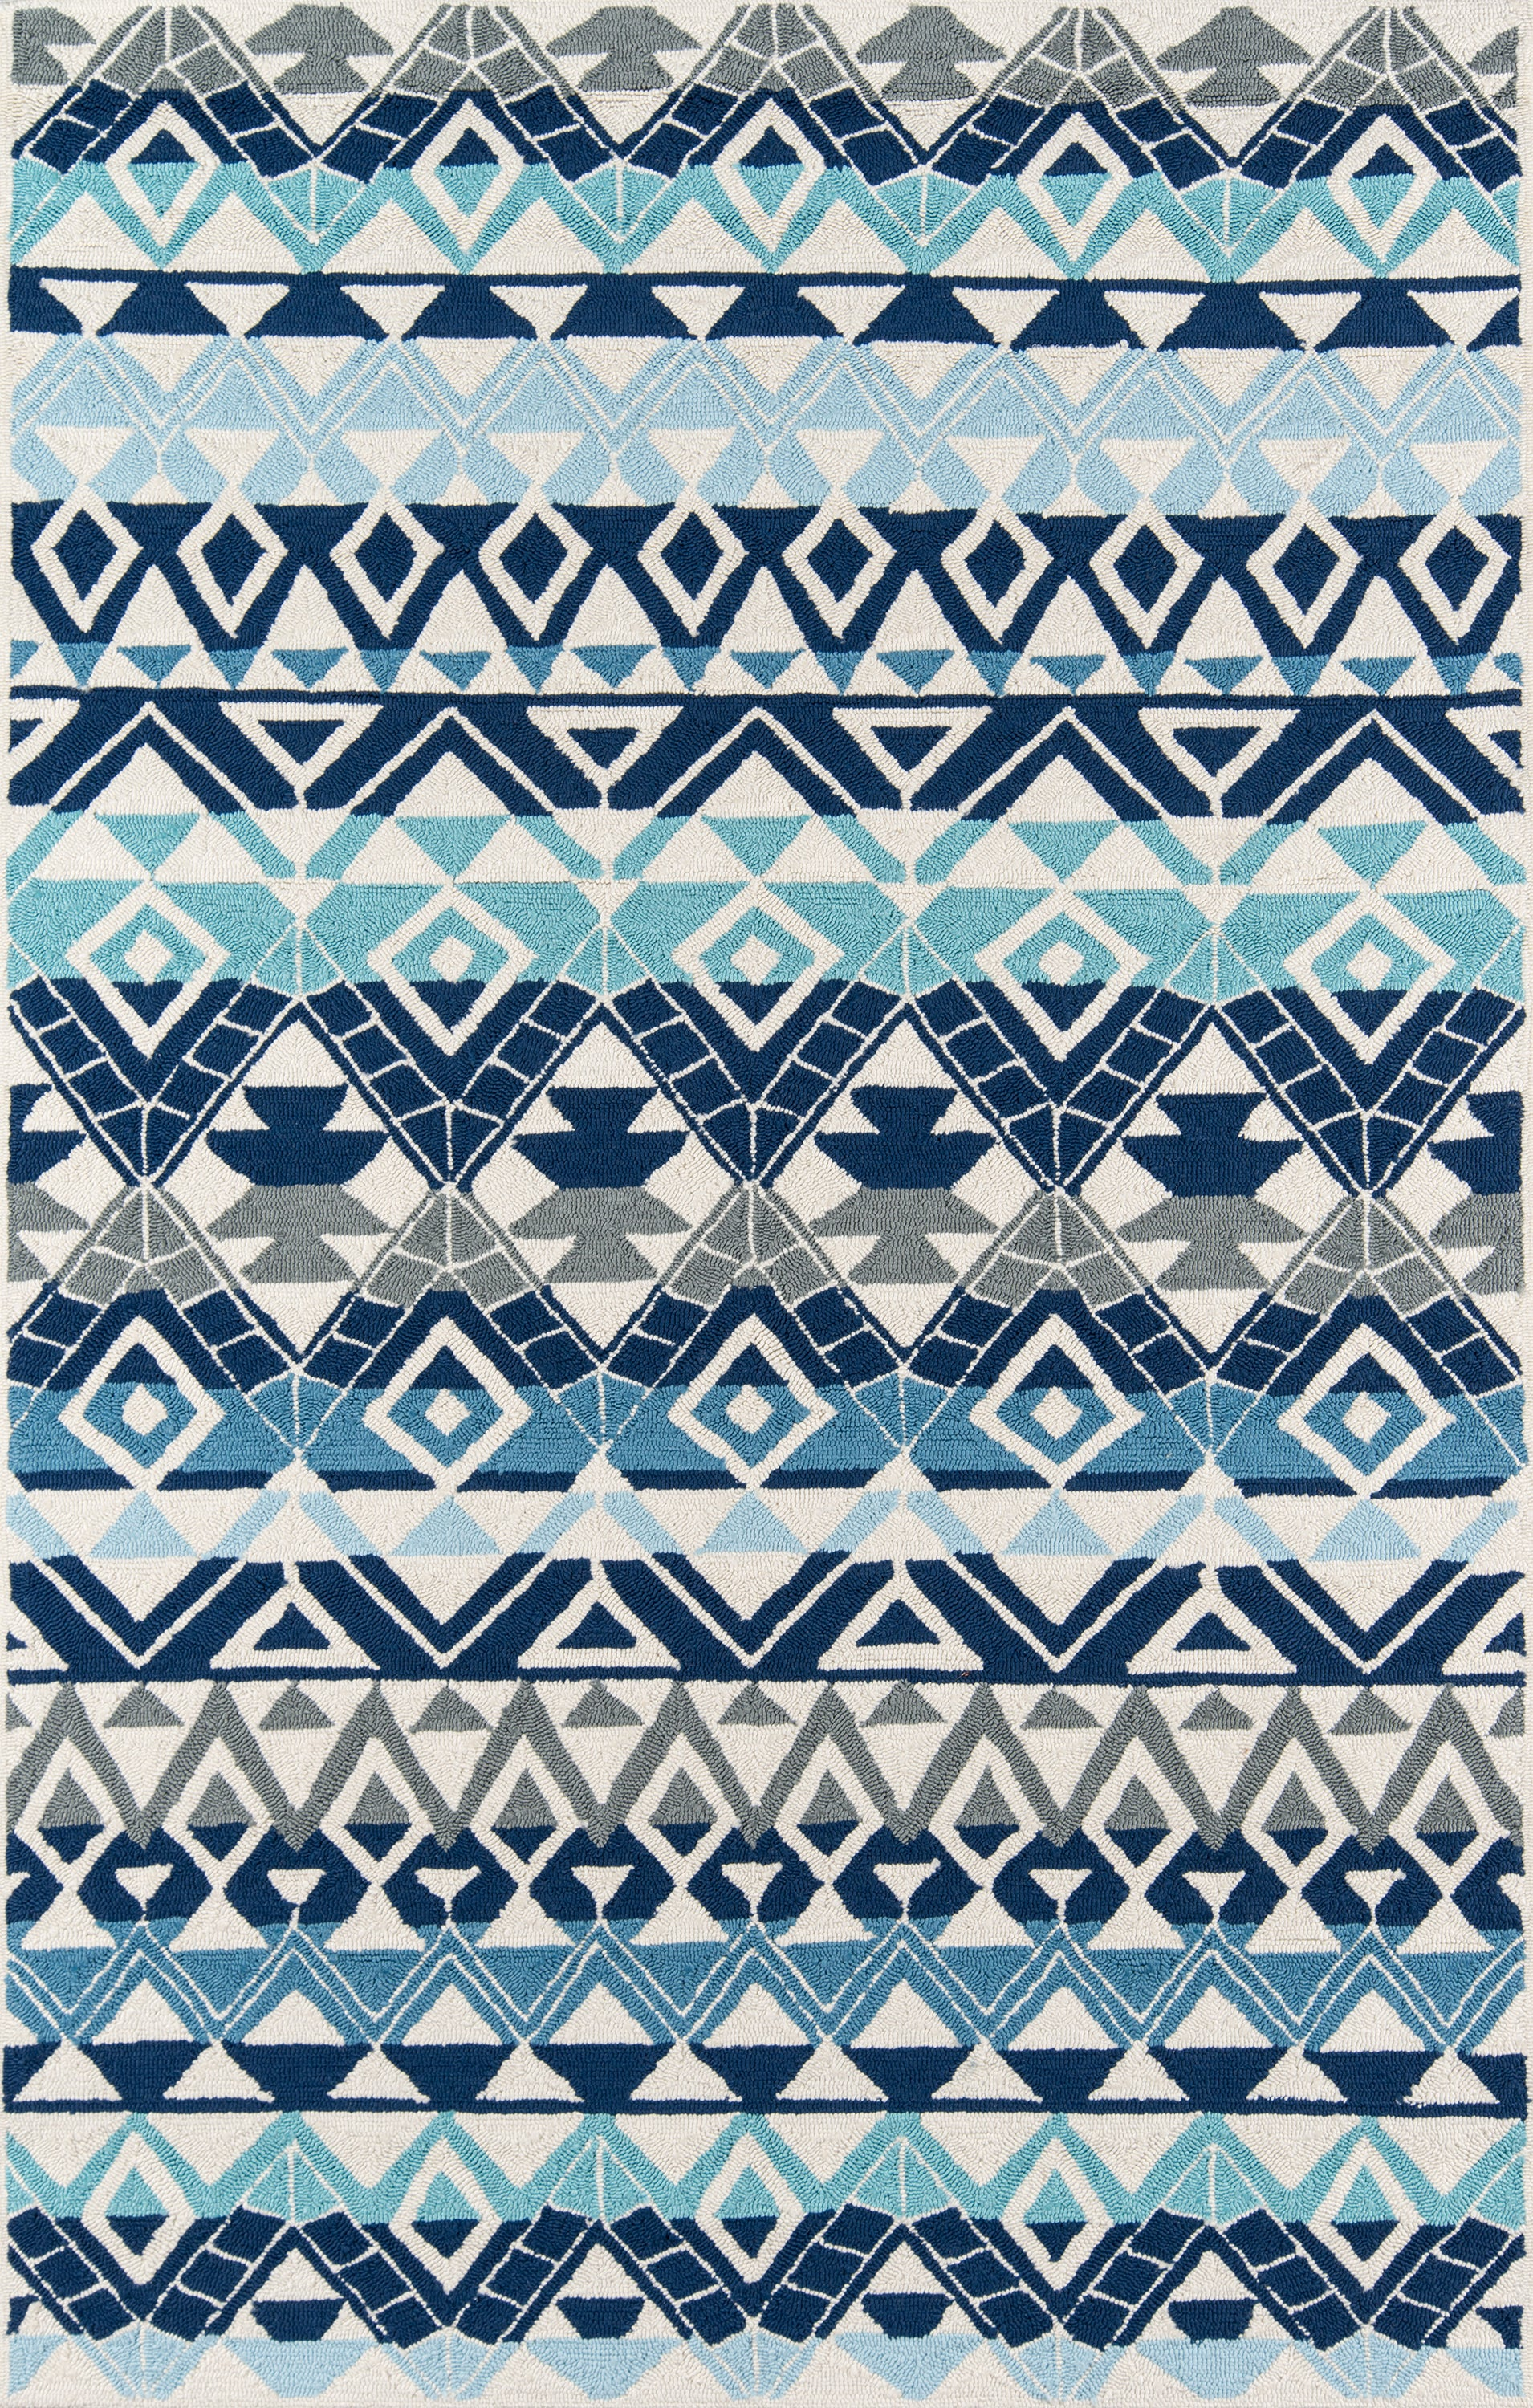 Rectangle, Round Blue Geometric Hand Hooked Synthetics Transitional recommended for Bedroom, Bathroom, Outdoor, Dining Room, Office, Hallway, Living Room